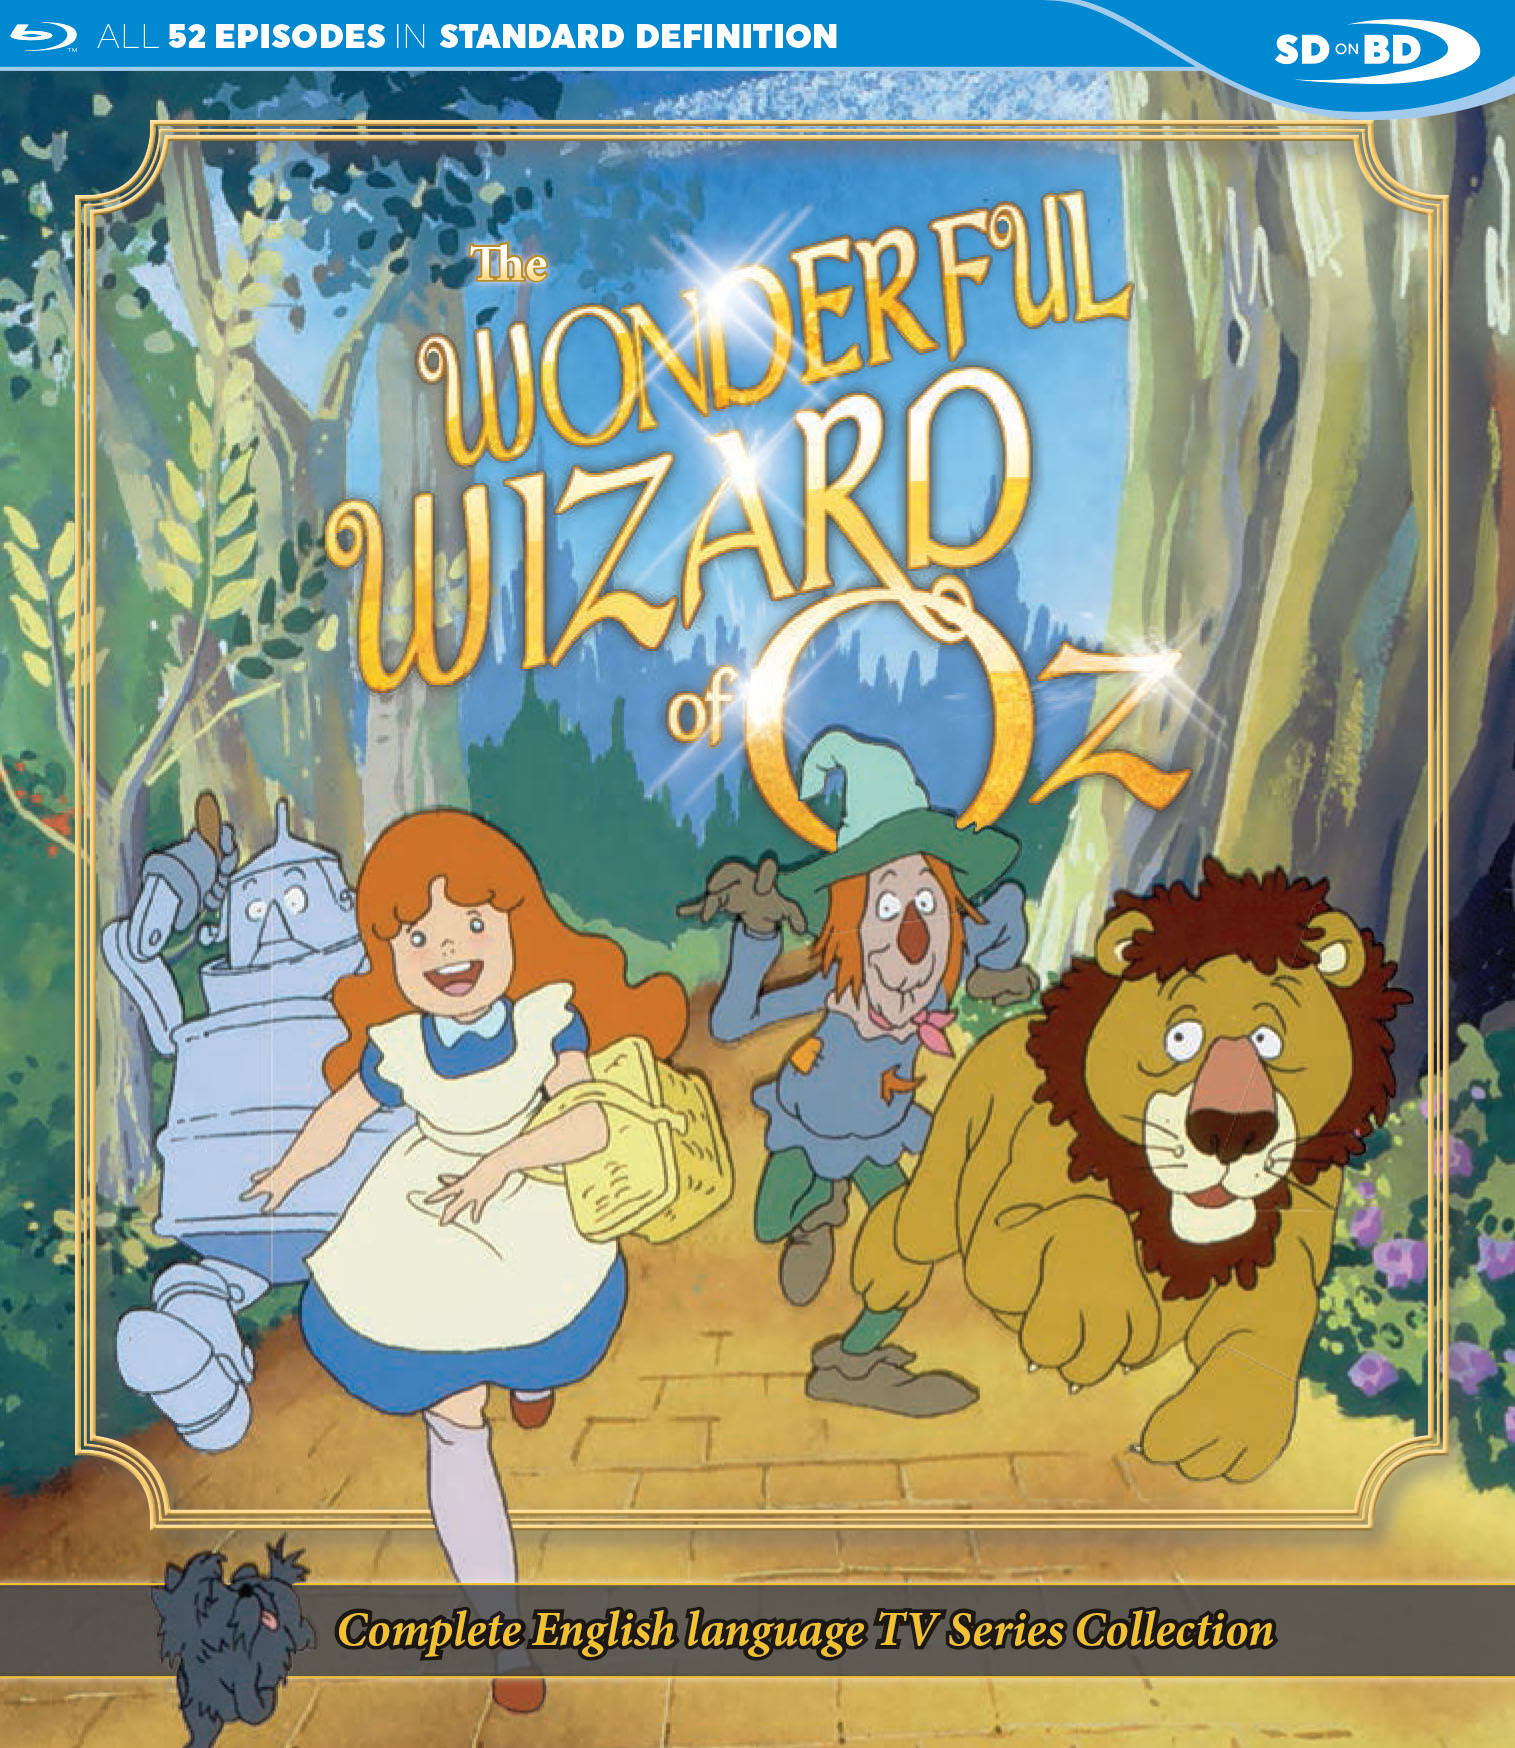 The Wonderful Wizard of Oz Blu-ray 875707197090